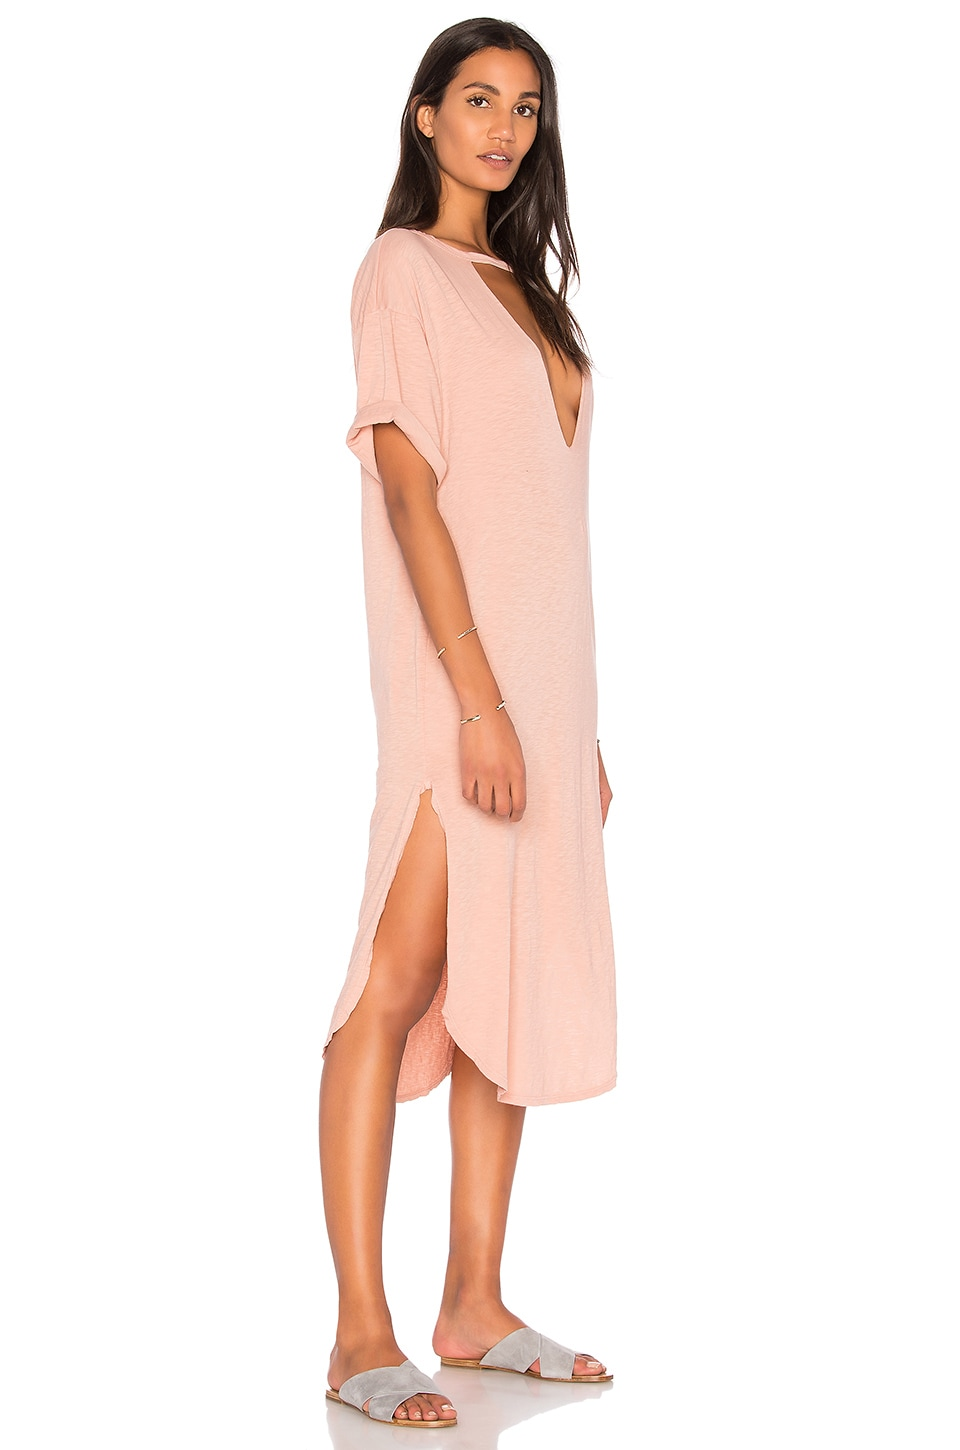 Lana Rose Tee Dress by Stillwater